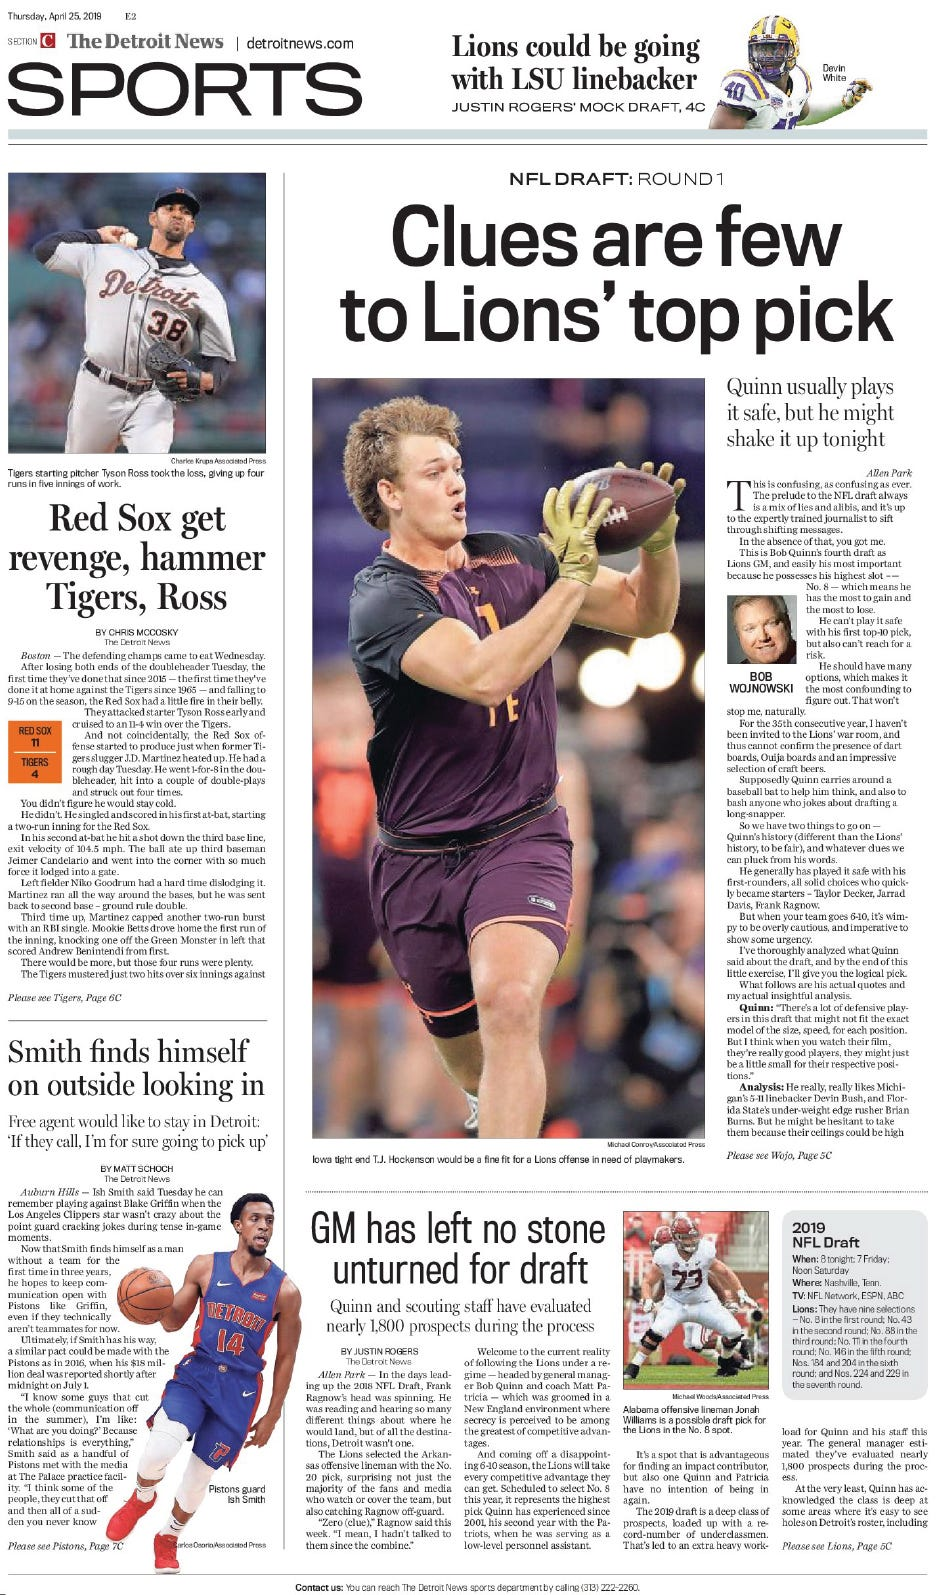 4bfa8c894 https://www.detroitnews.com/picture-gallery/sports/2018/05/06/view ...